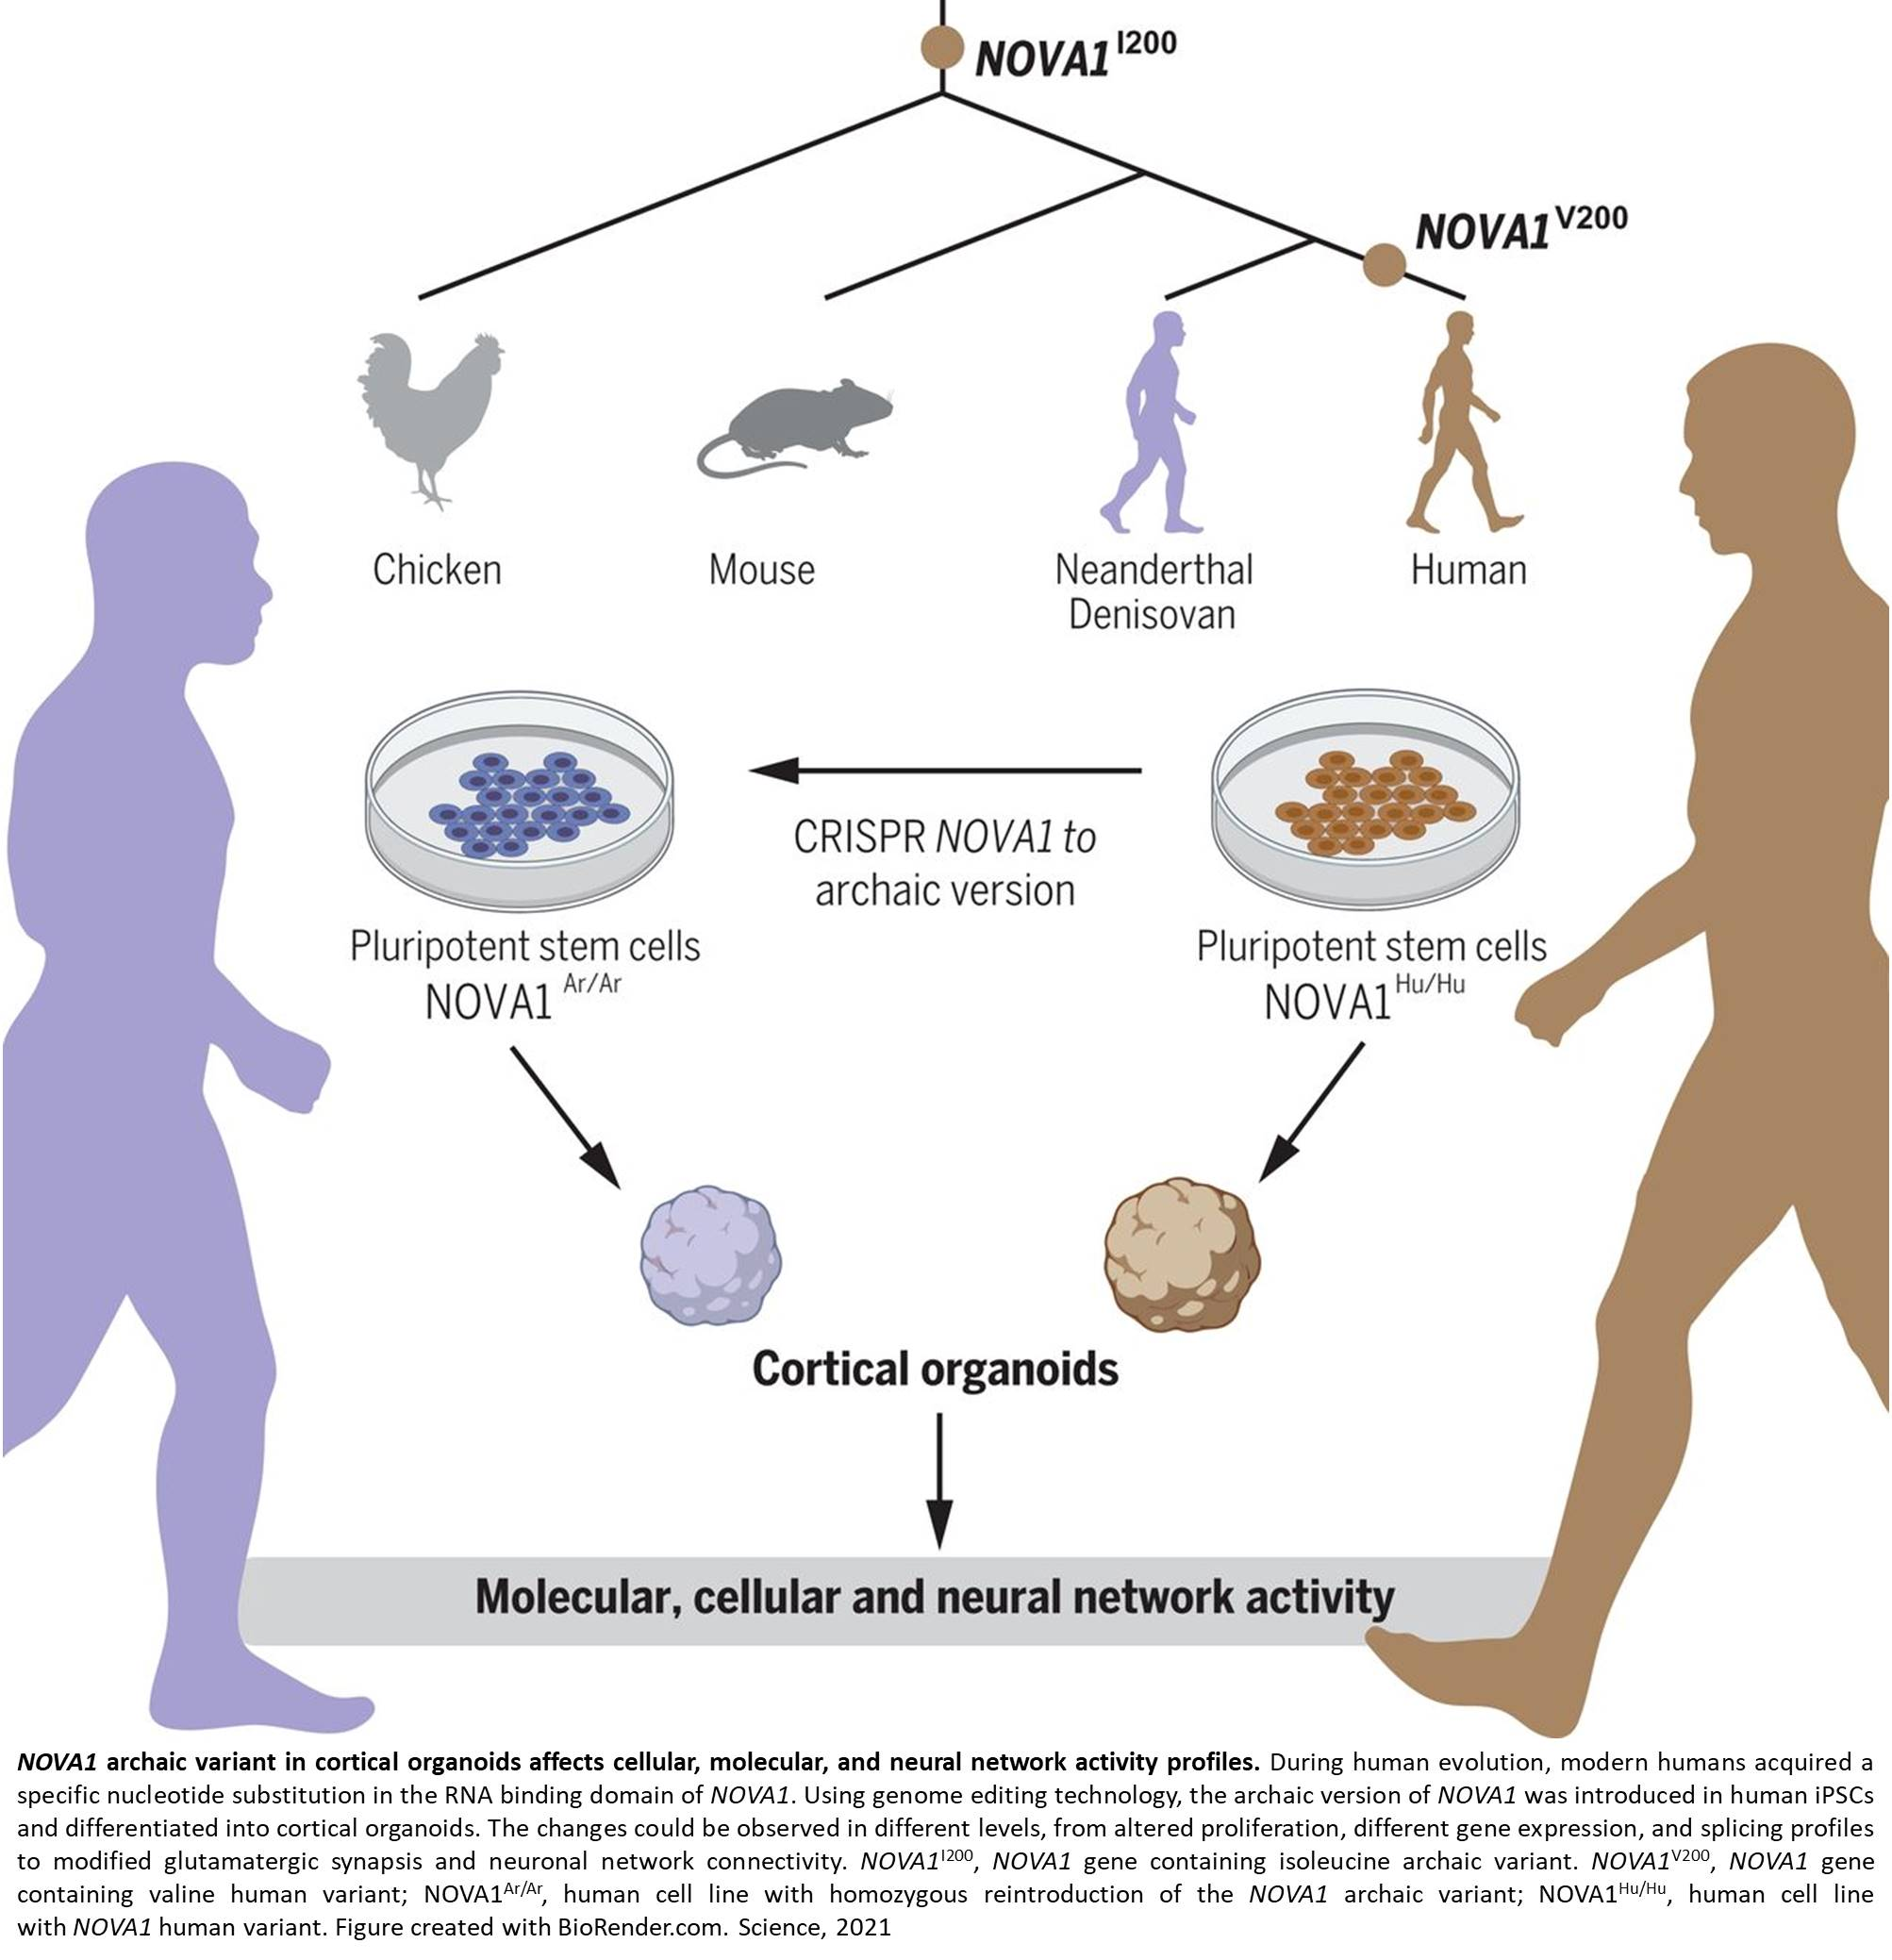 Neurodevelopmental changes in human brain organoids from Neanderthal genes